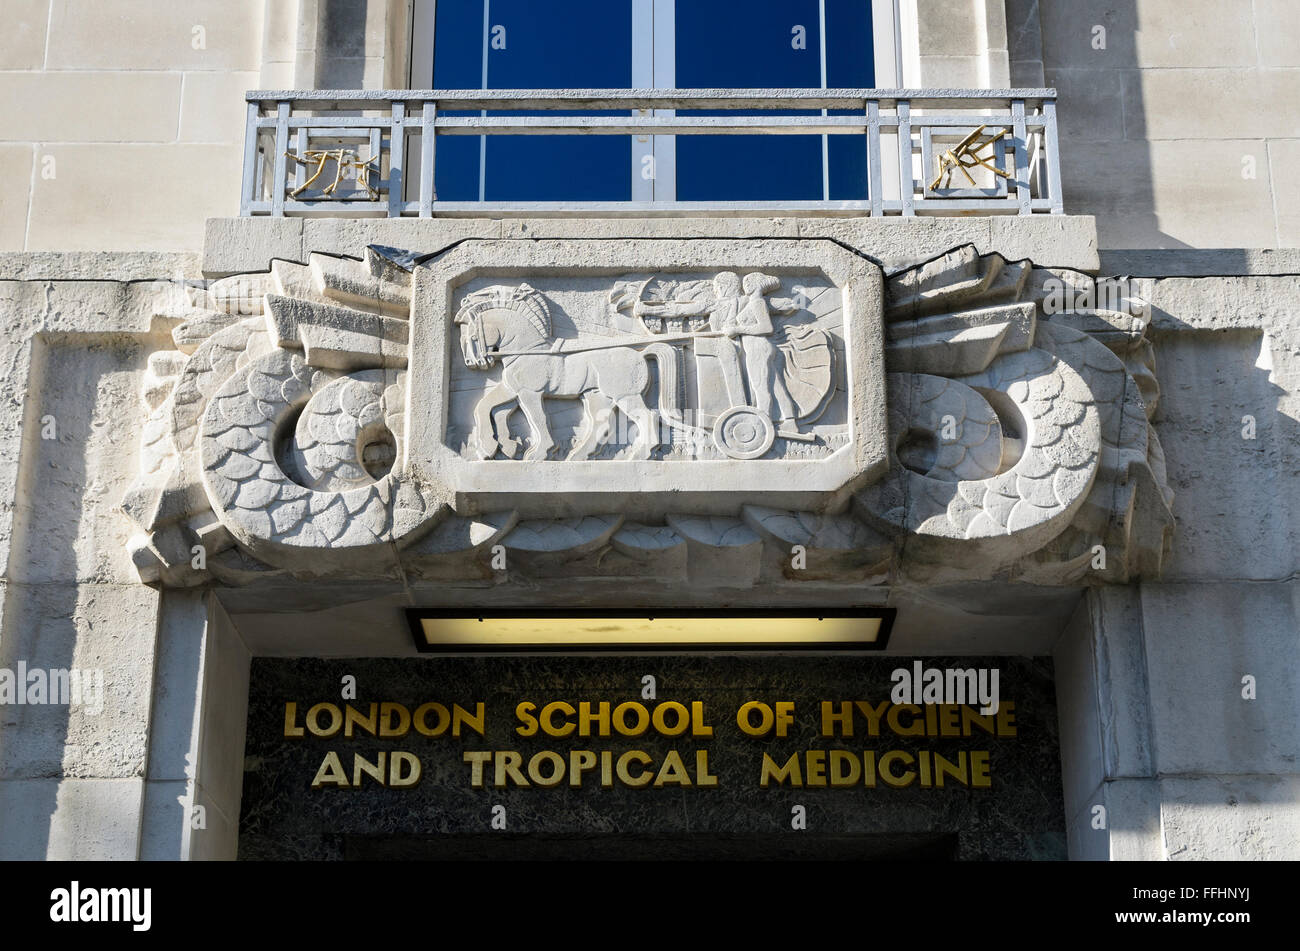 London School of Hygiene and Tropical Medicine, Keppel St, London, WC1E 7HT. Stock Photo